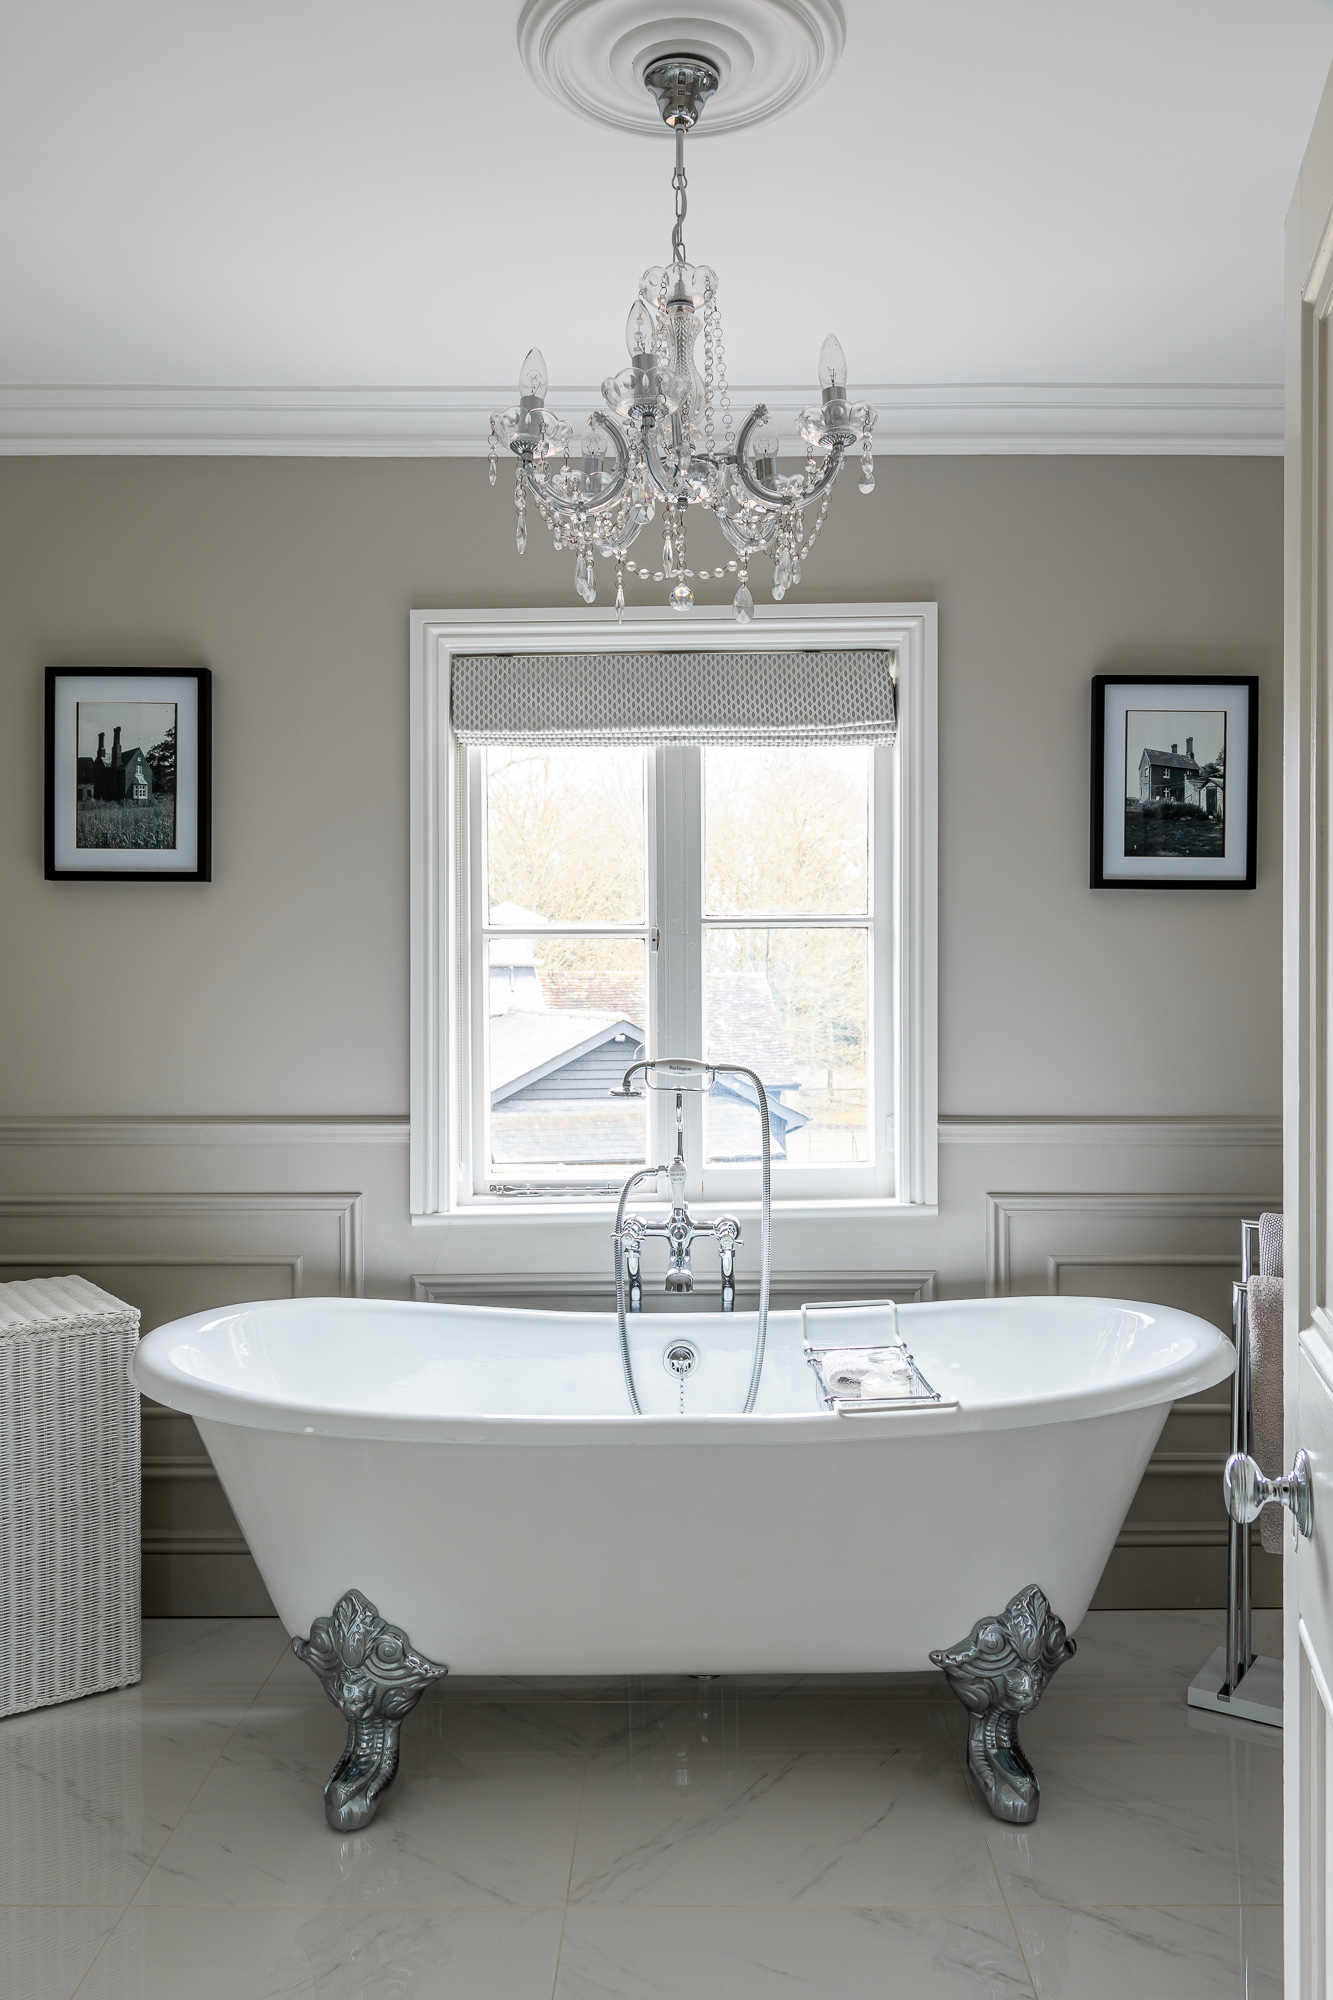 jonathan bond, interior photographer, freestanding bath in bathroom, harlow